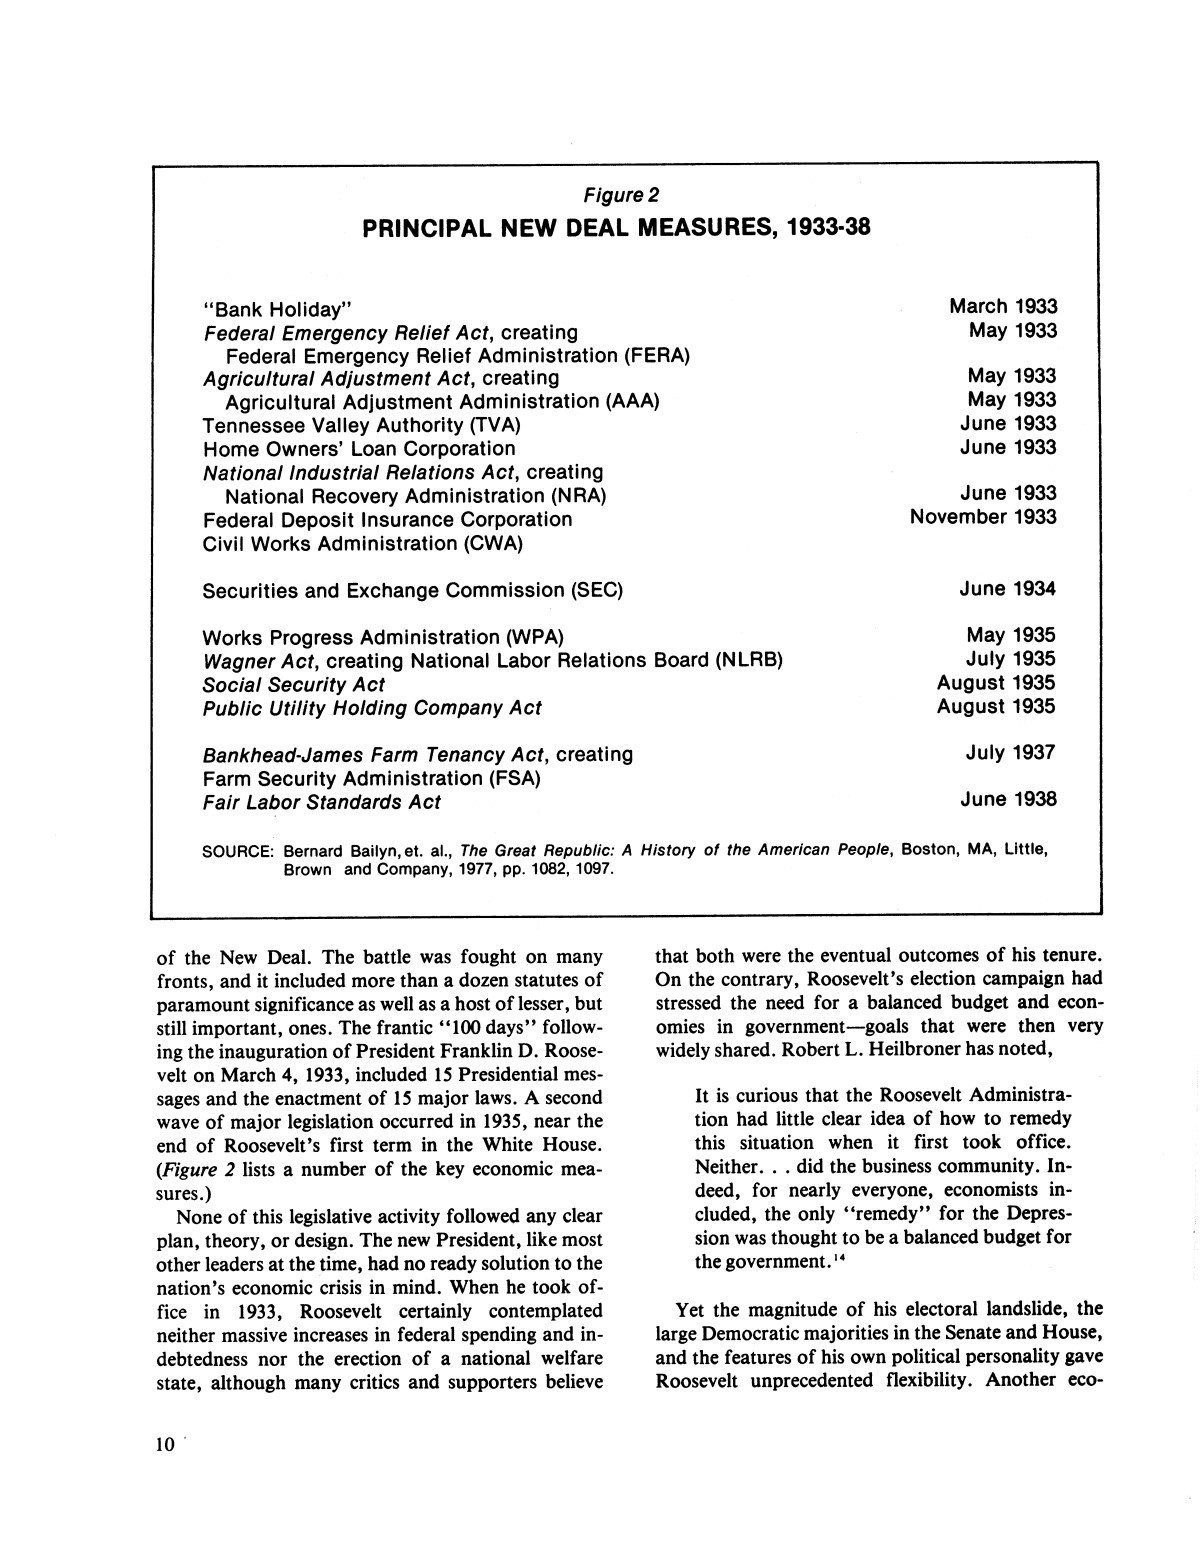 the use of the securities and exchange commission the agricultural adjustment act and the social sec The new deal: measures for relief, recovery, and reform  agricultural adjustment act  securities and exchange commission [sec]:.